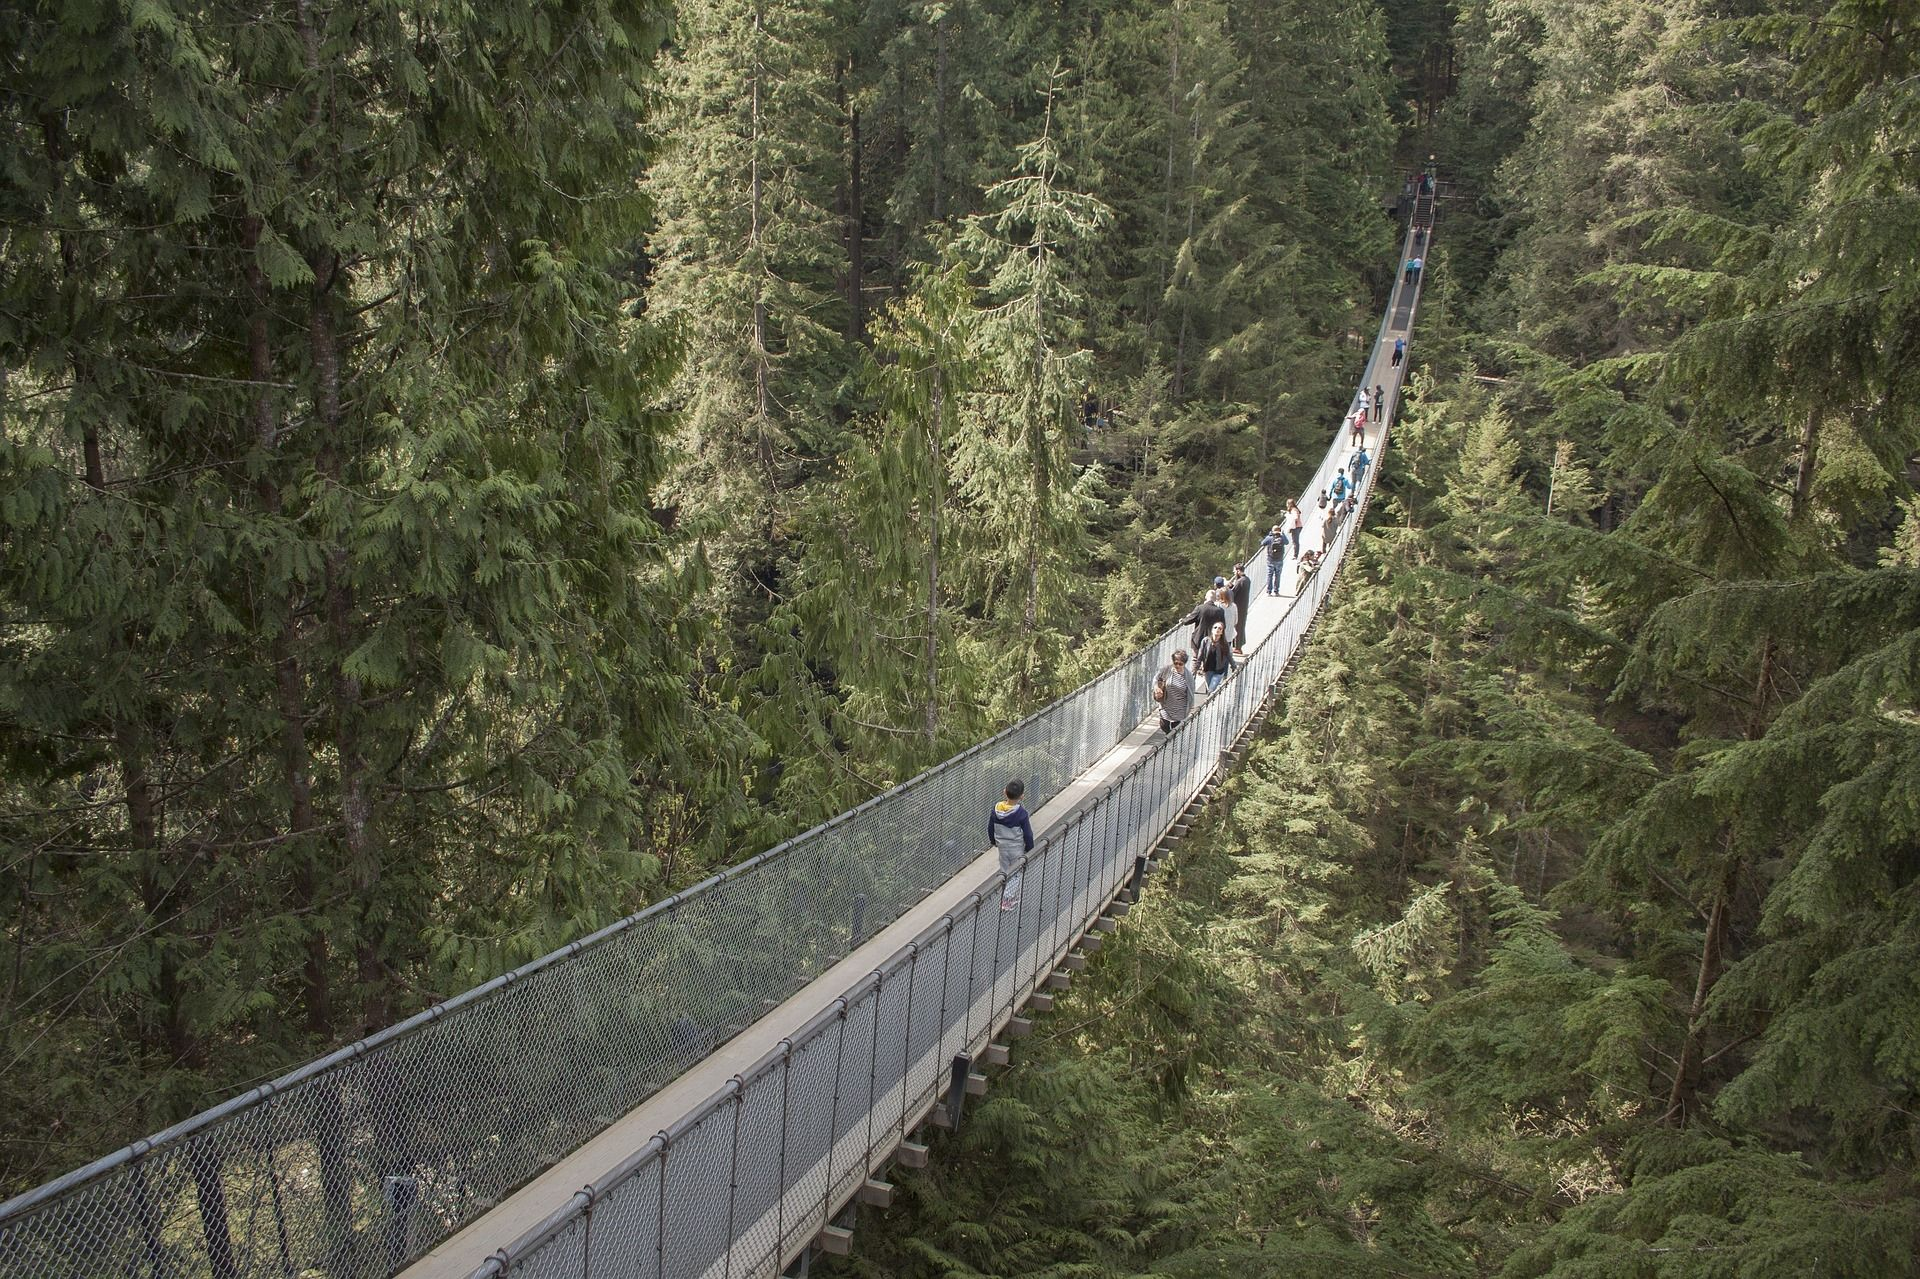 capilano-suspension-bridge-1393076_1920